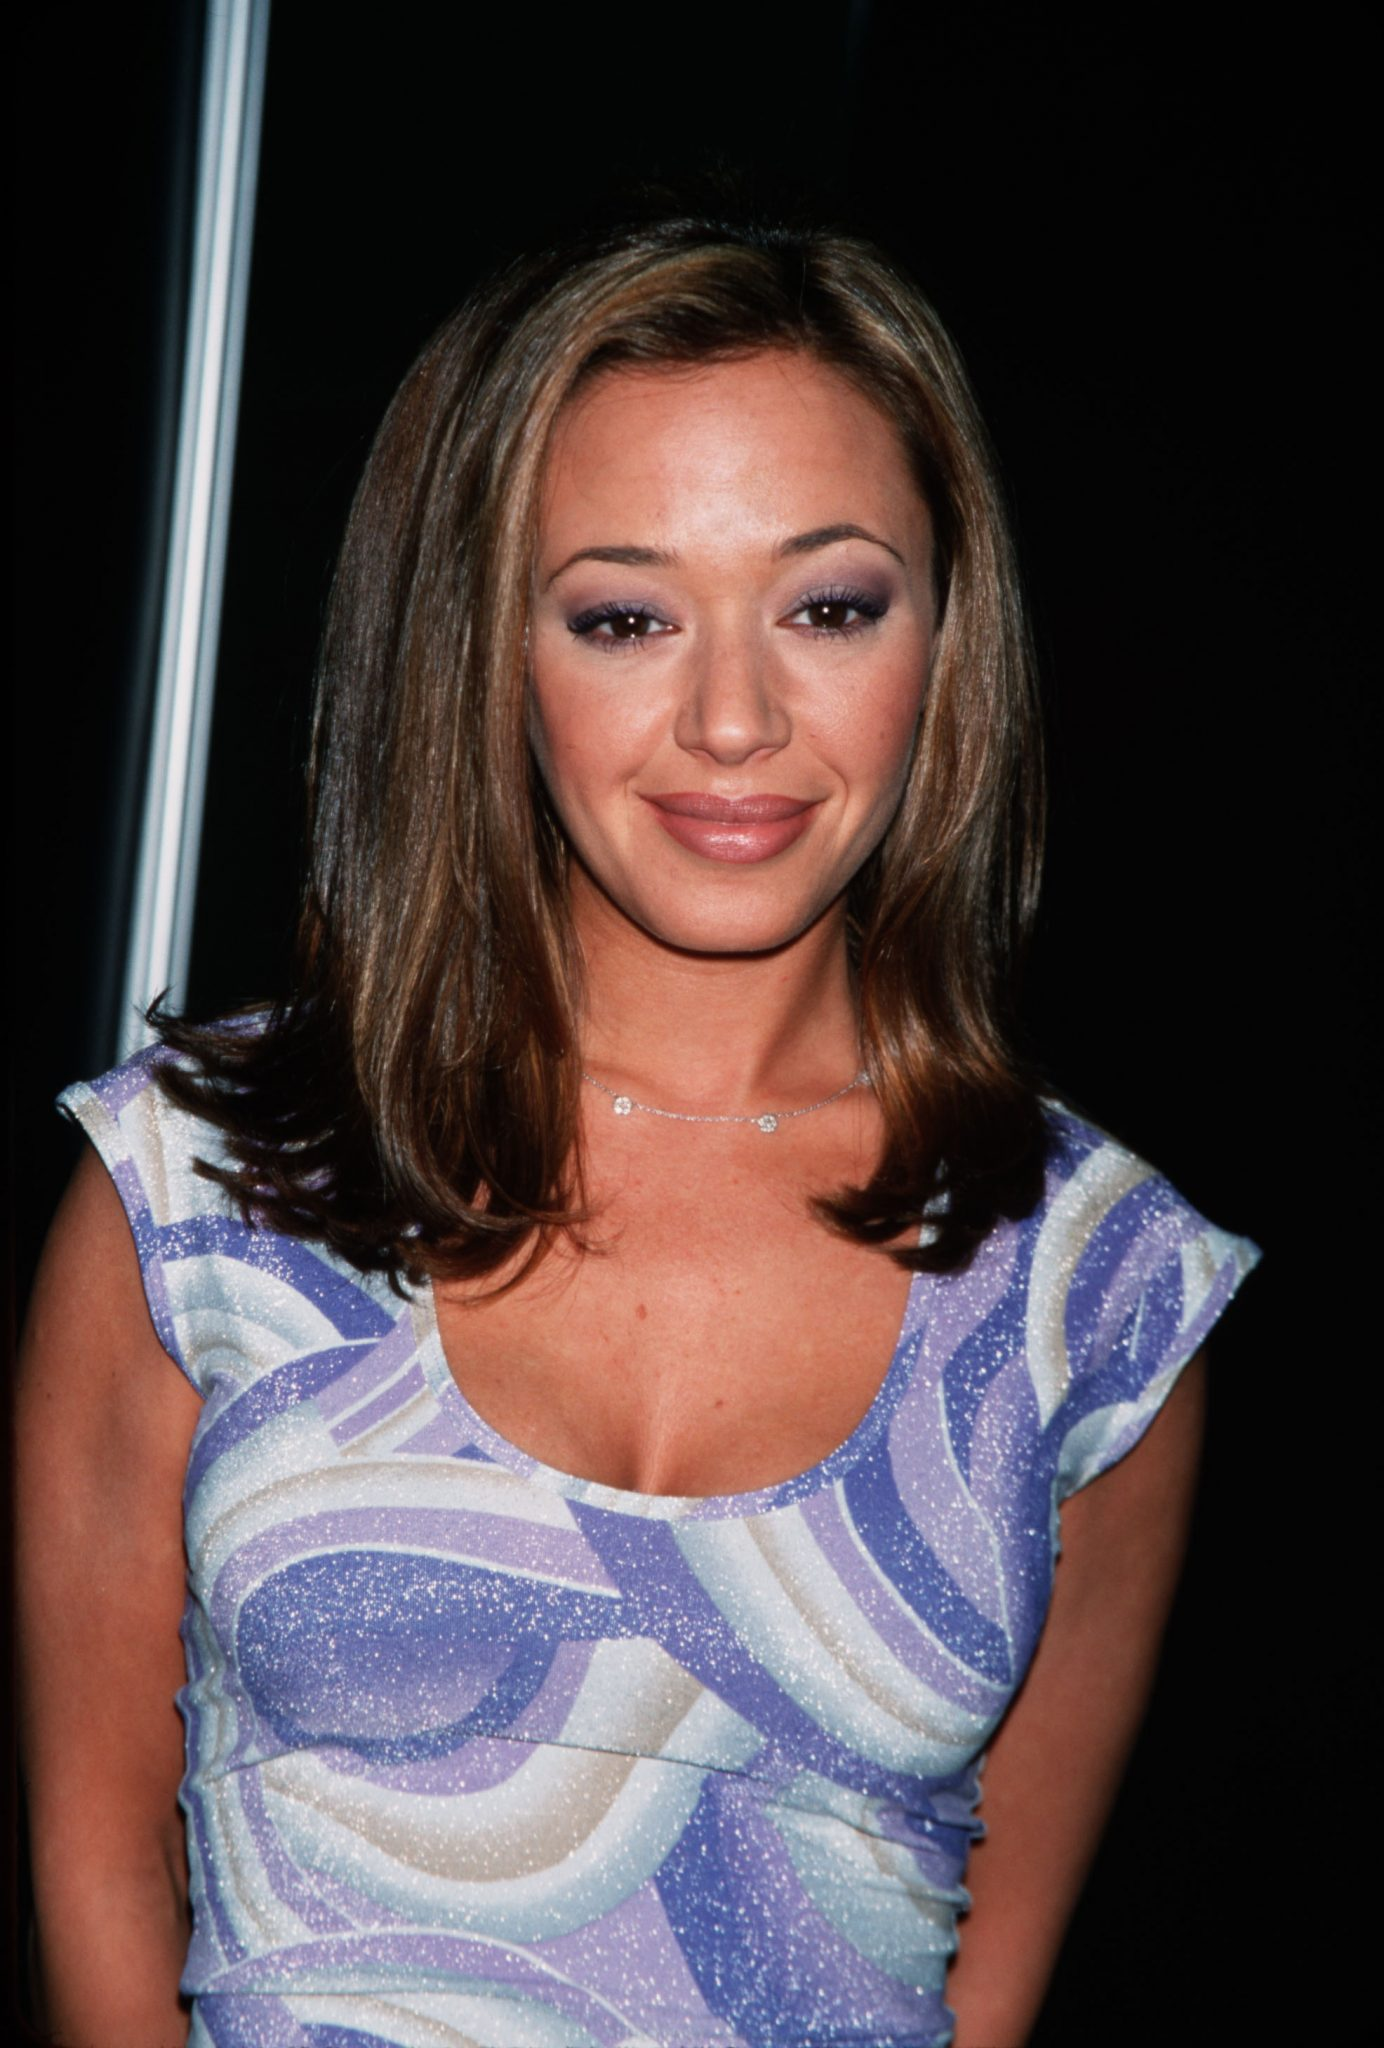 Wikipedia Leah Remini >> Leah Remini Biography| Profile| Pictures| News